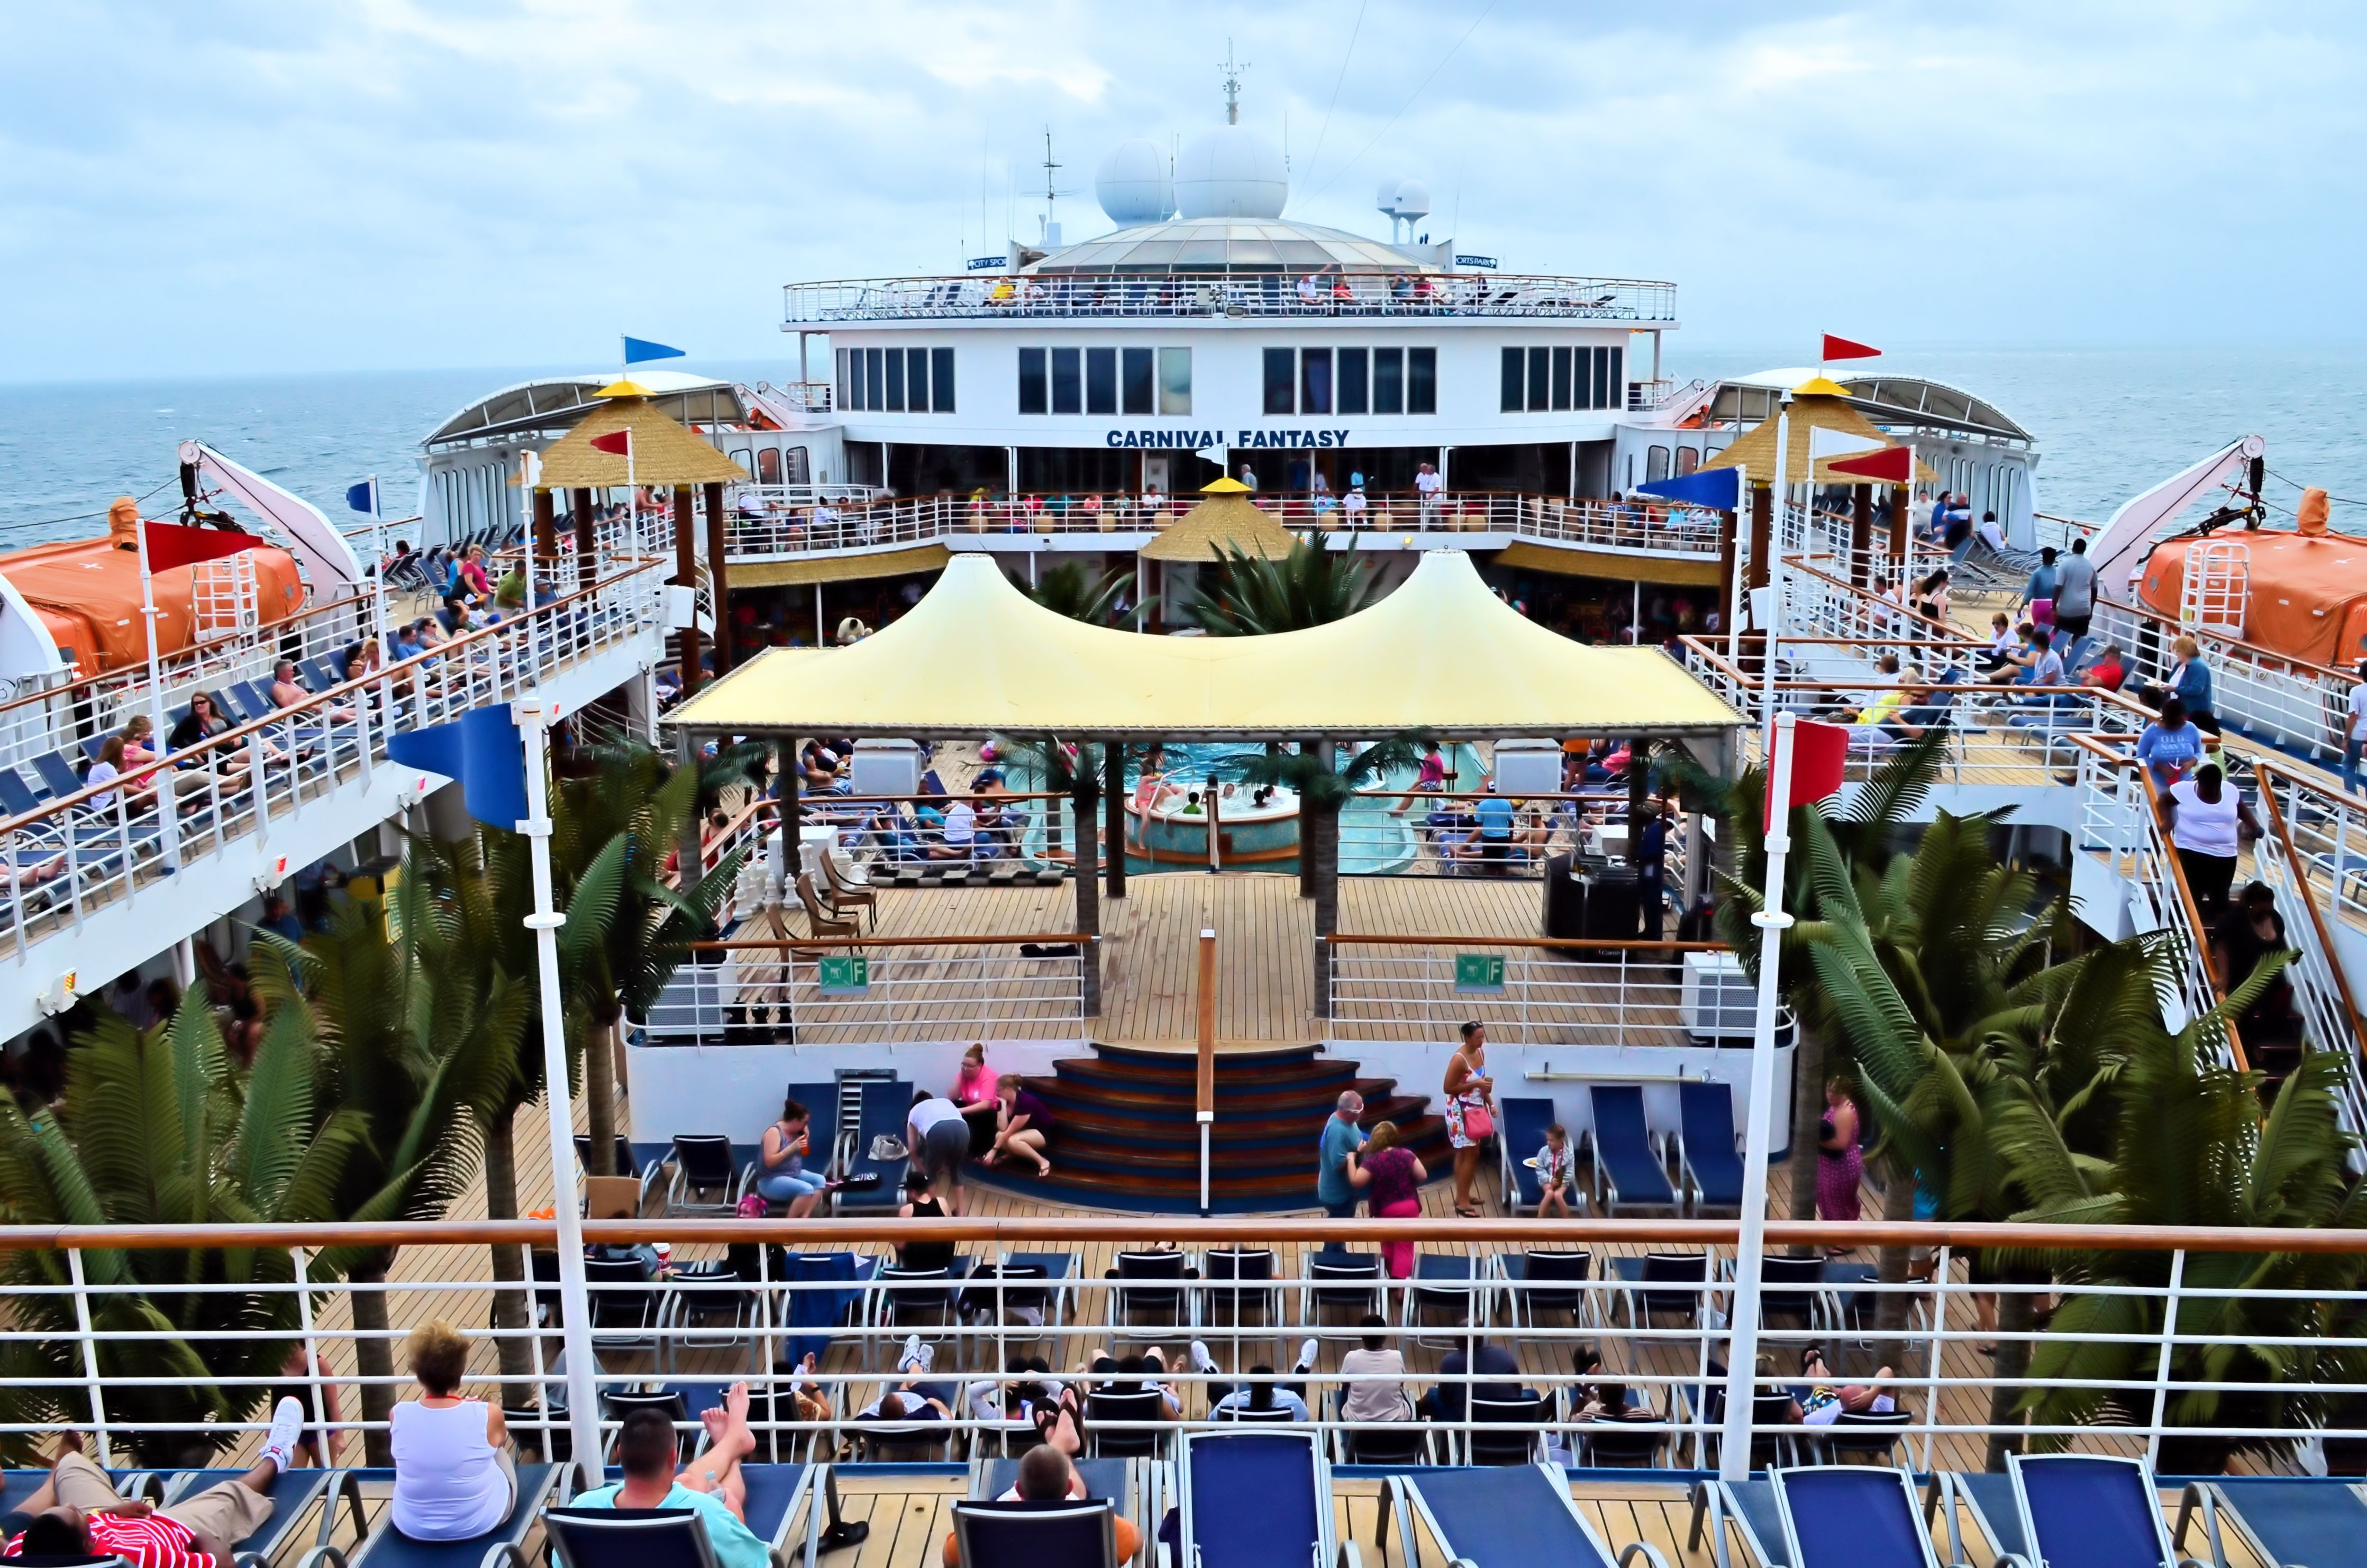 Carnival Fantasy Cruise Review